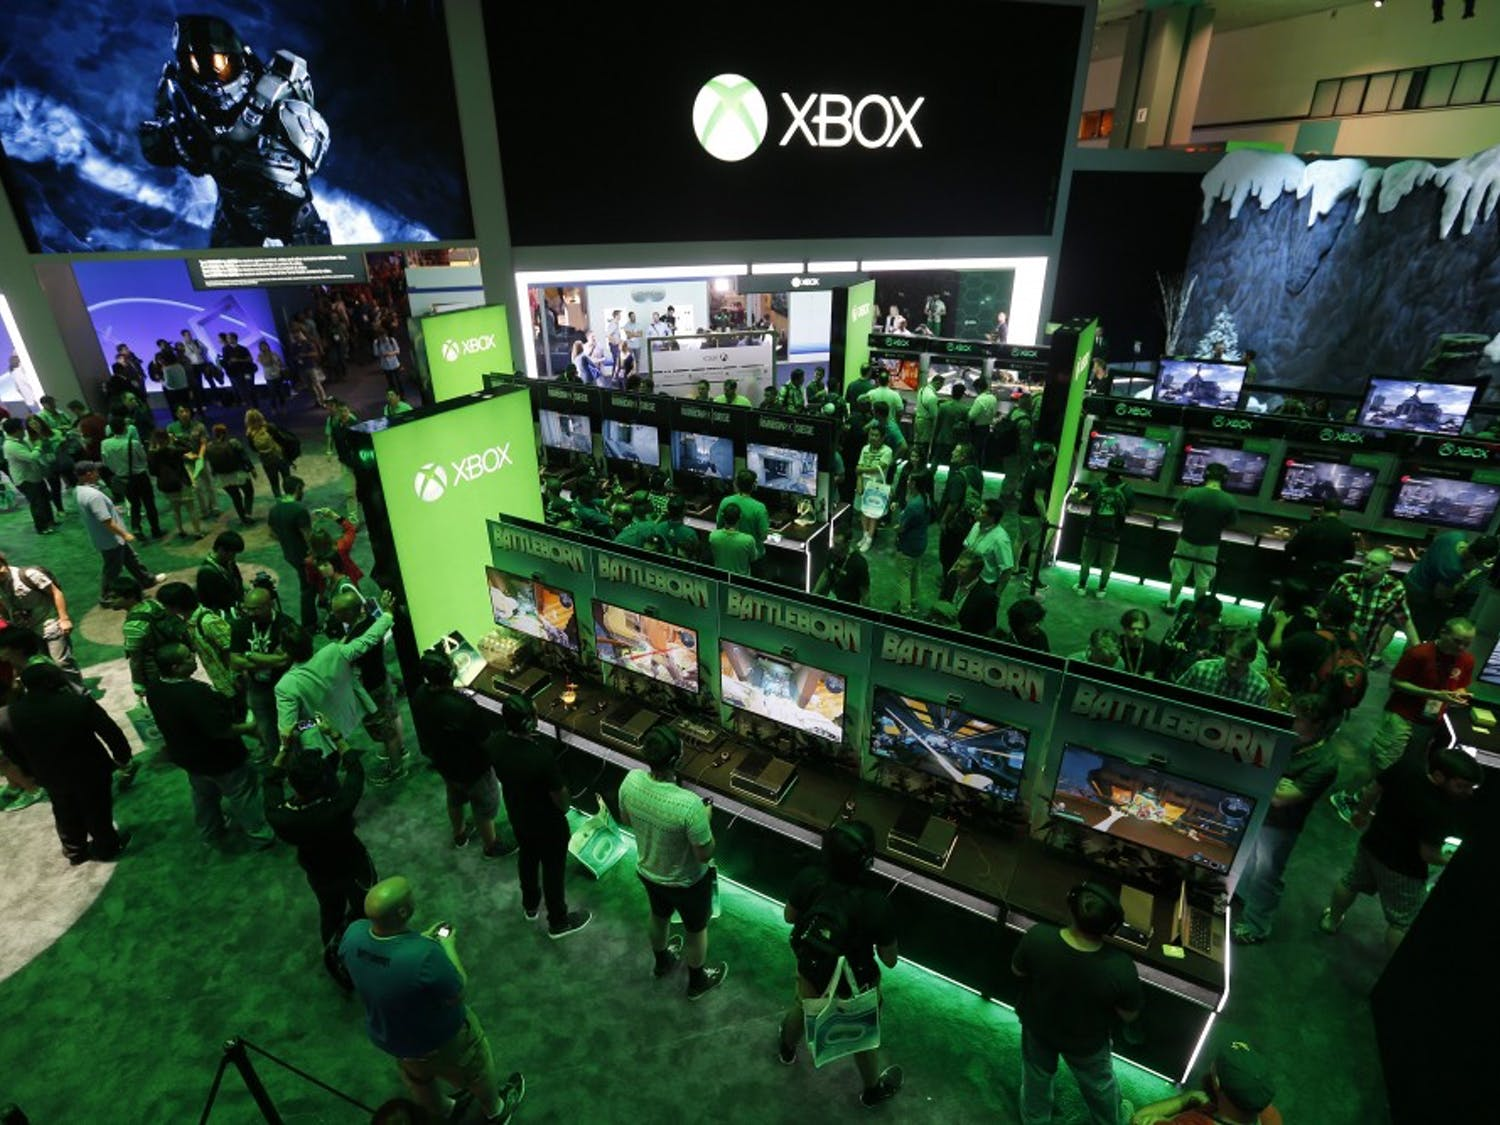 A large crowd of video game enthusiasts fill the Xbox game booth to try out new games during the first day of three-day E3 Electronic Entertainment Expo in Los Angeles on Tuesday, June 16, 2015. (Allen J. Schaben/Los Angeles Times/TNS)